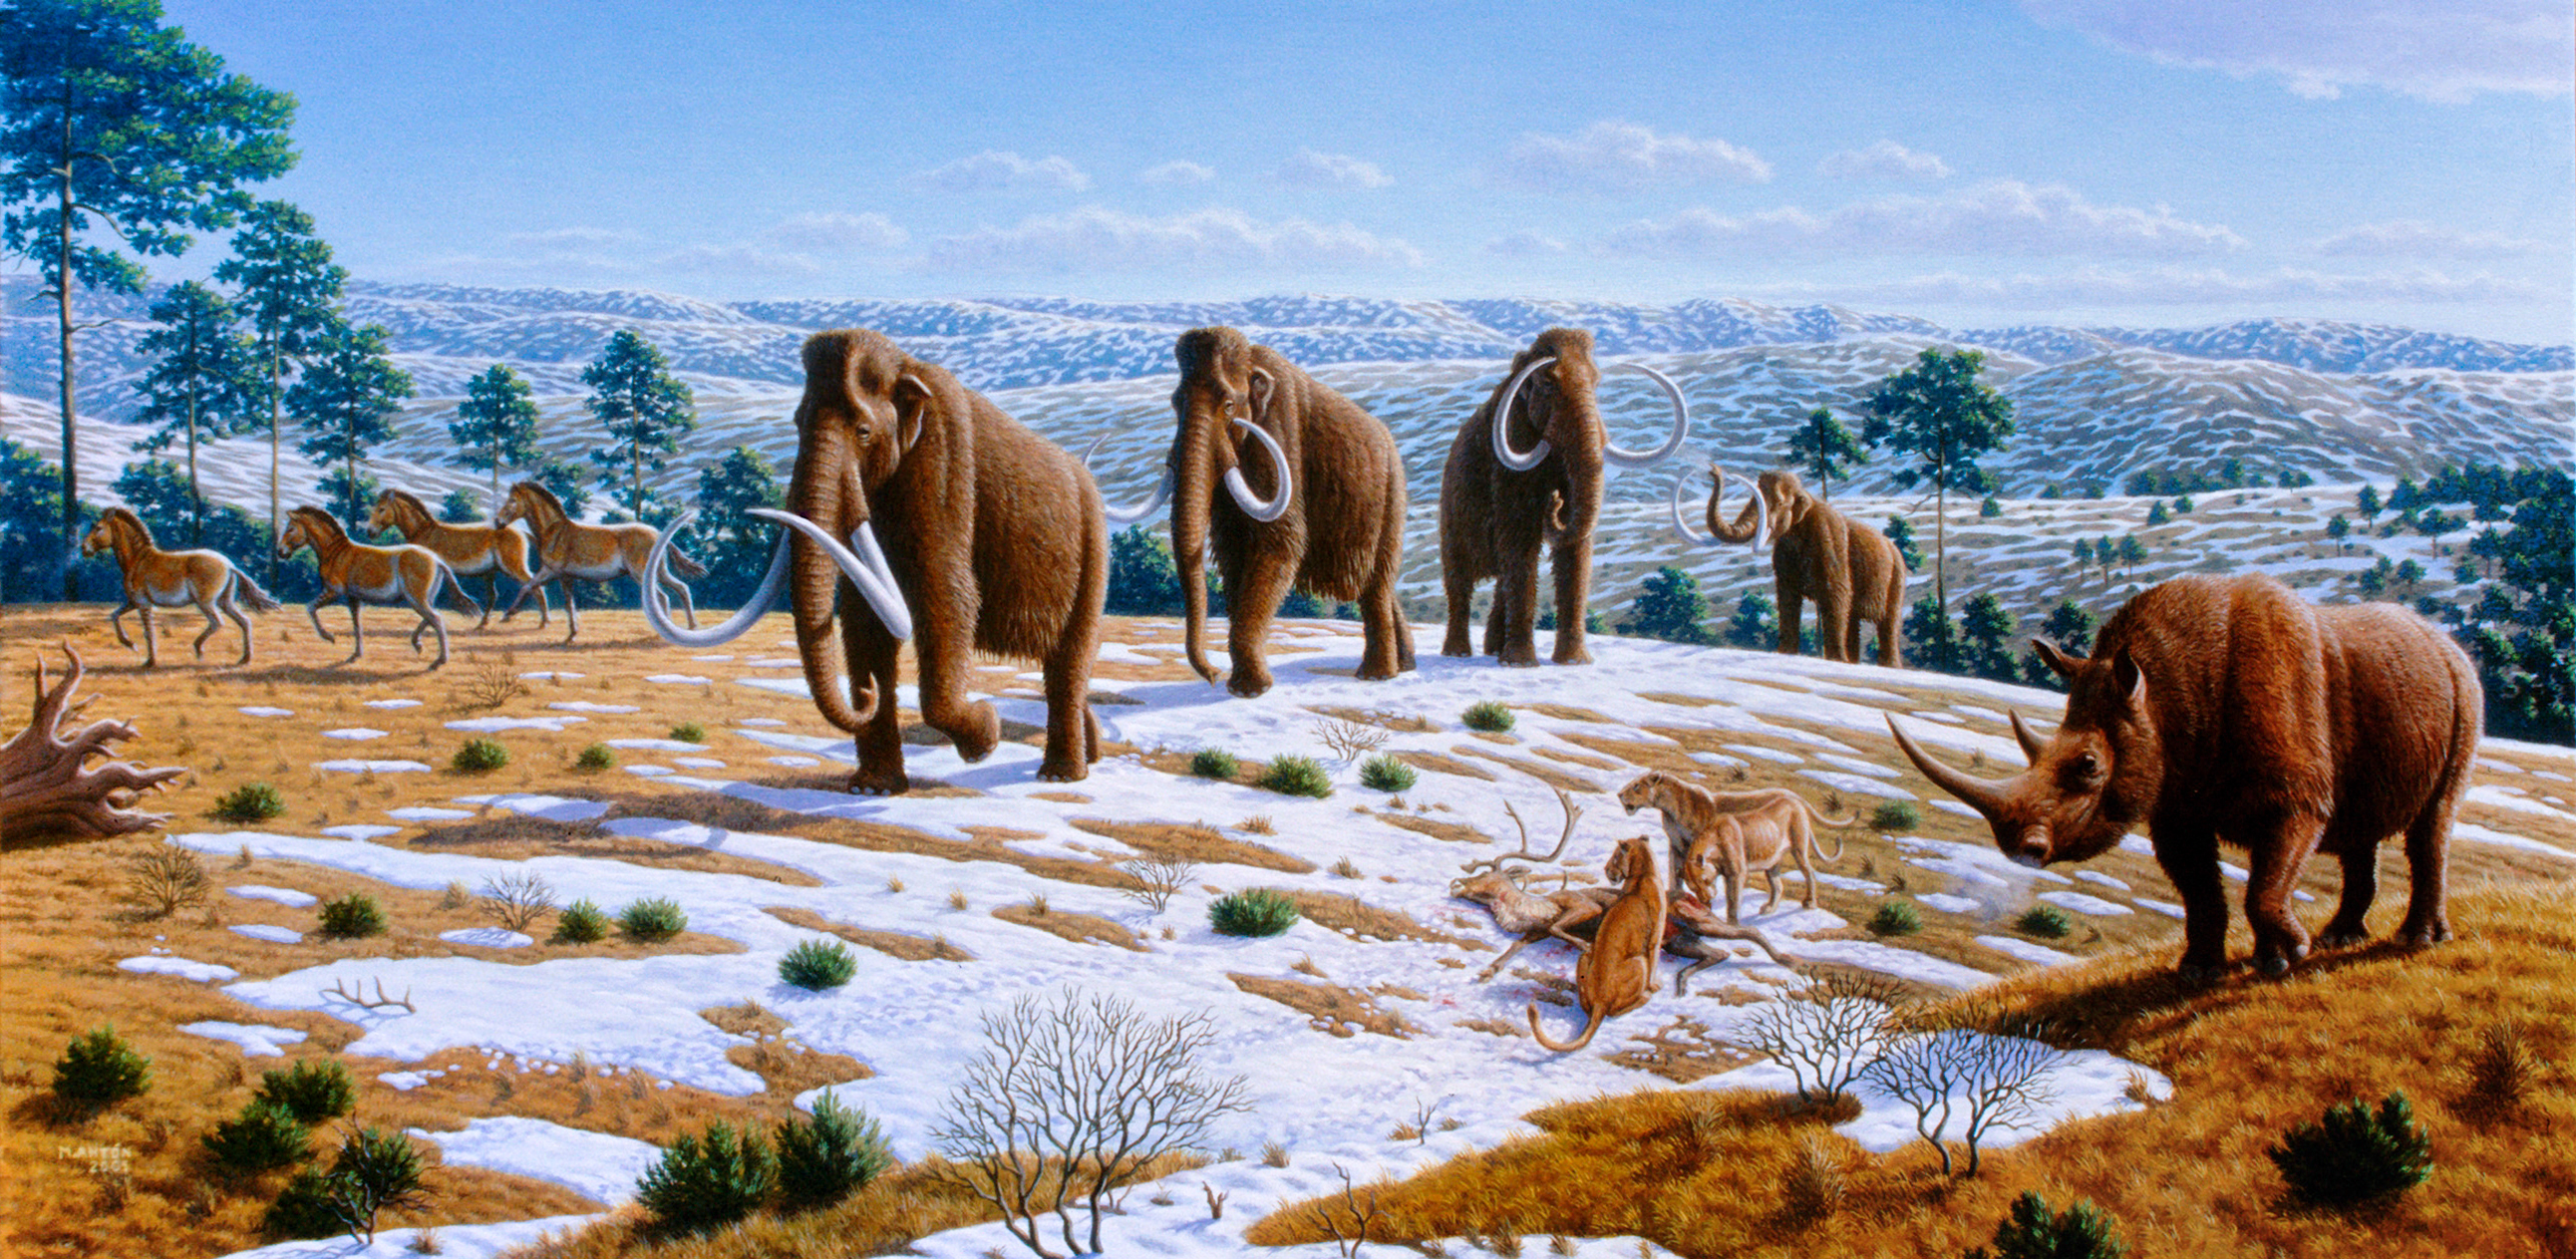 quaternary extinction event wikiwand